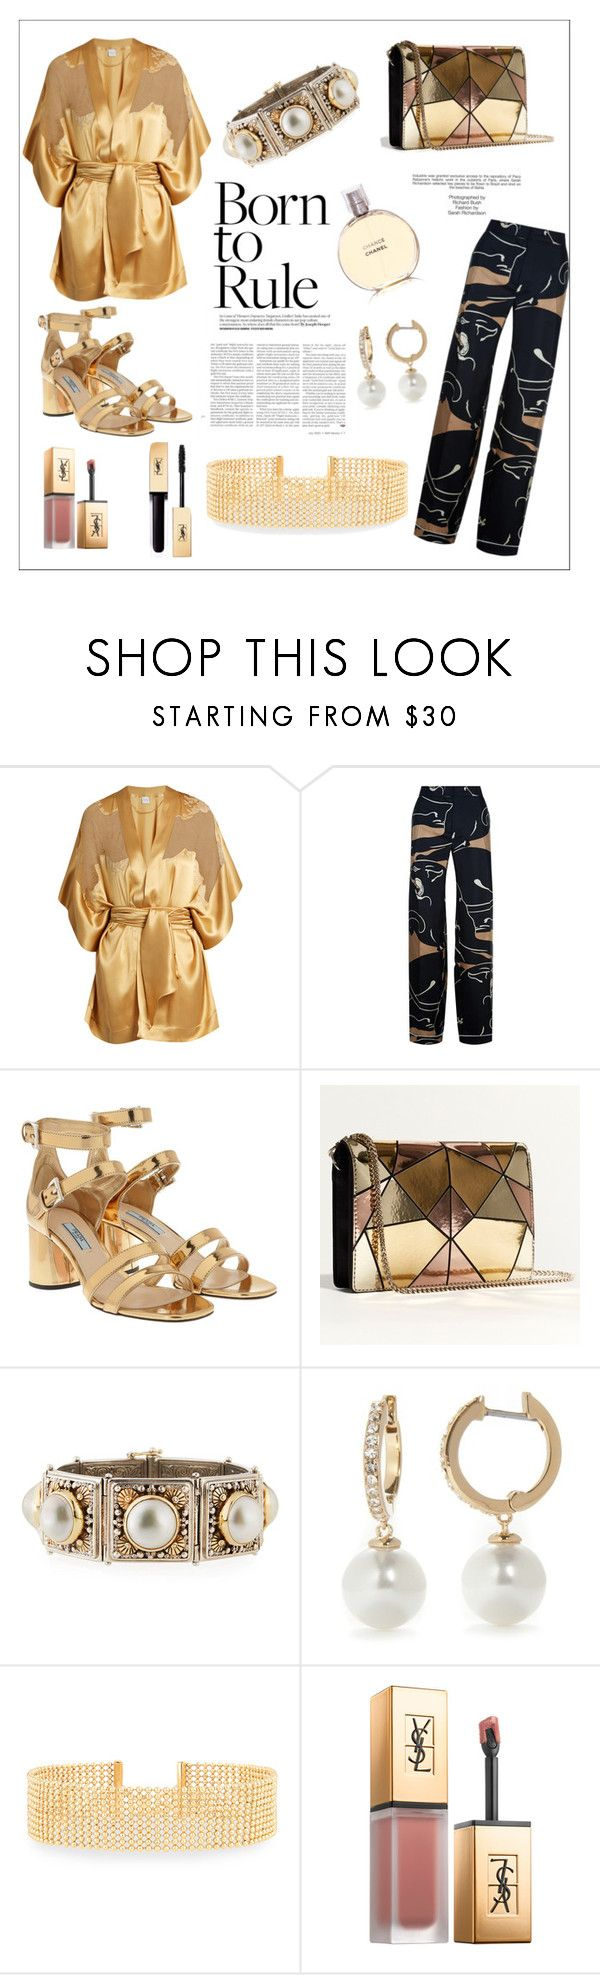 """""""ONLY GOLD ( Born to Rule)"""" by artanna ❤ liked on Polyvore featuring Carine Gilson, Valentino, Prada, Karen Millen, Industrie, Konstantino, Kate Spade, Lydell NYC and Yves Saint Laurent"""